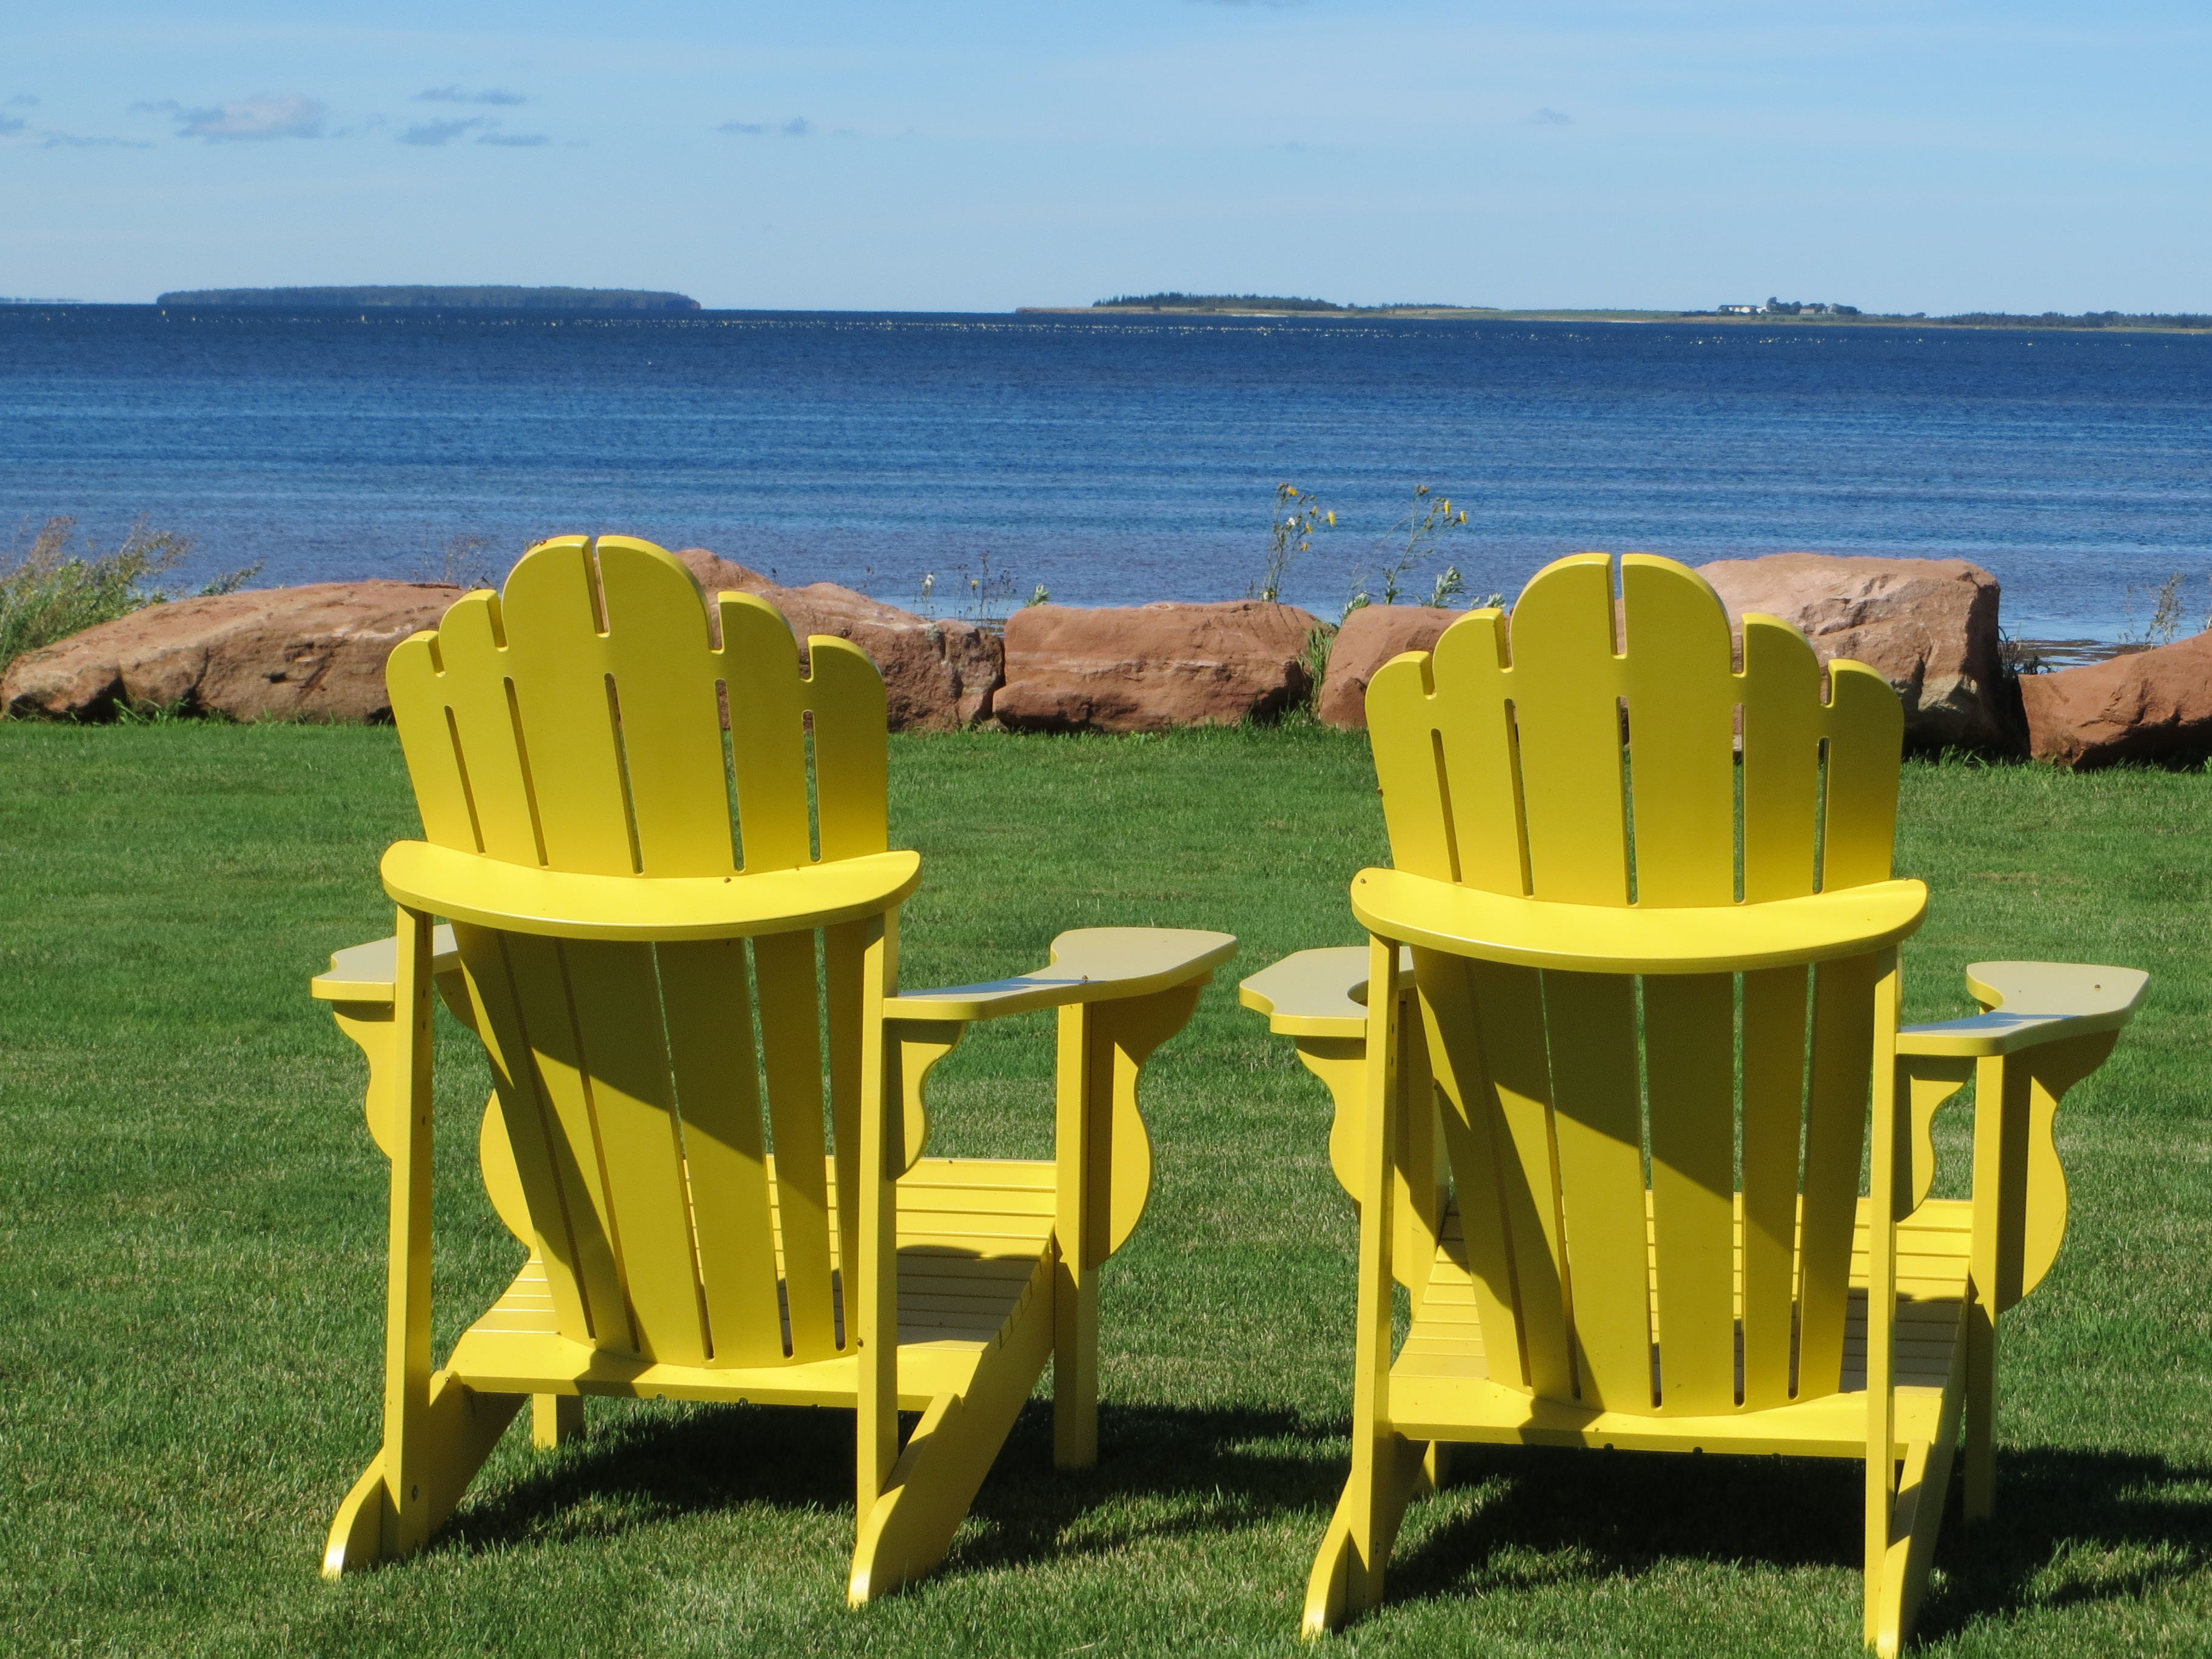 Pei Cottages Pei Cottage Rentals Pei Cottages For Rent Waterfront